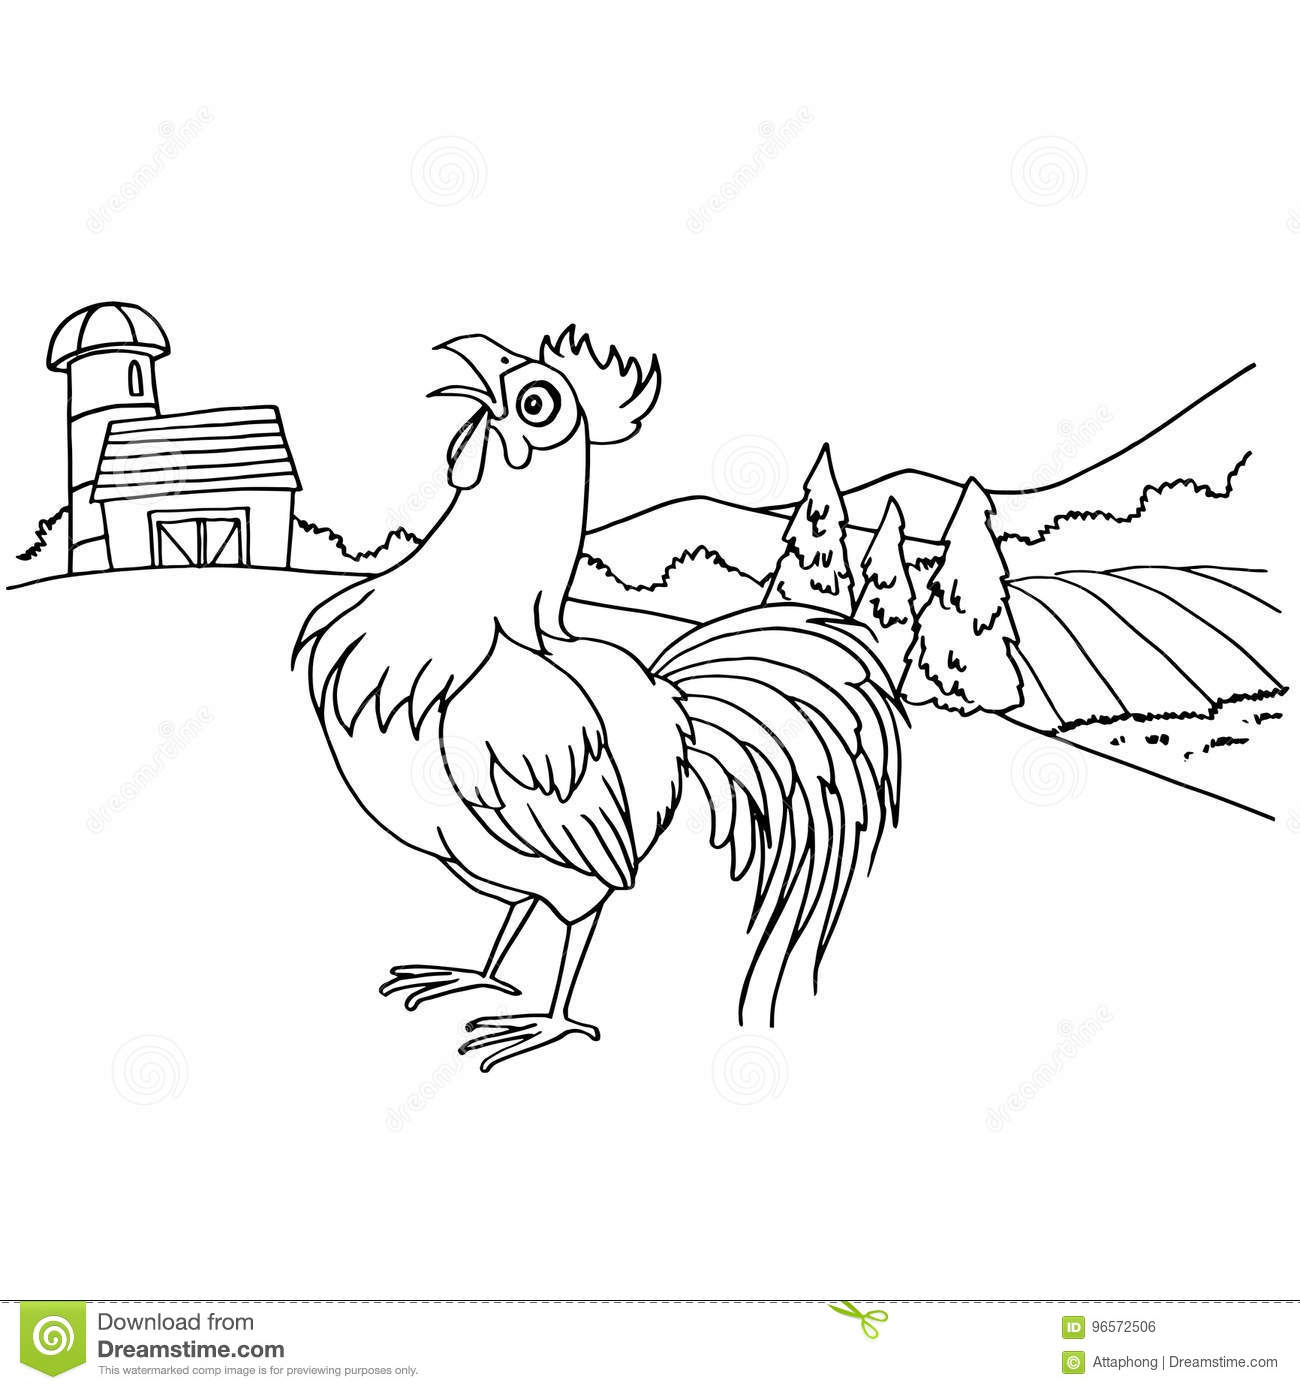 Cartoon Rooster Coloring Page Vector Stock Vector - Illustration of ...